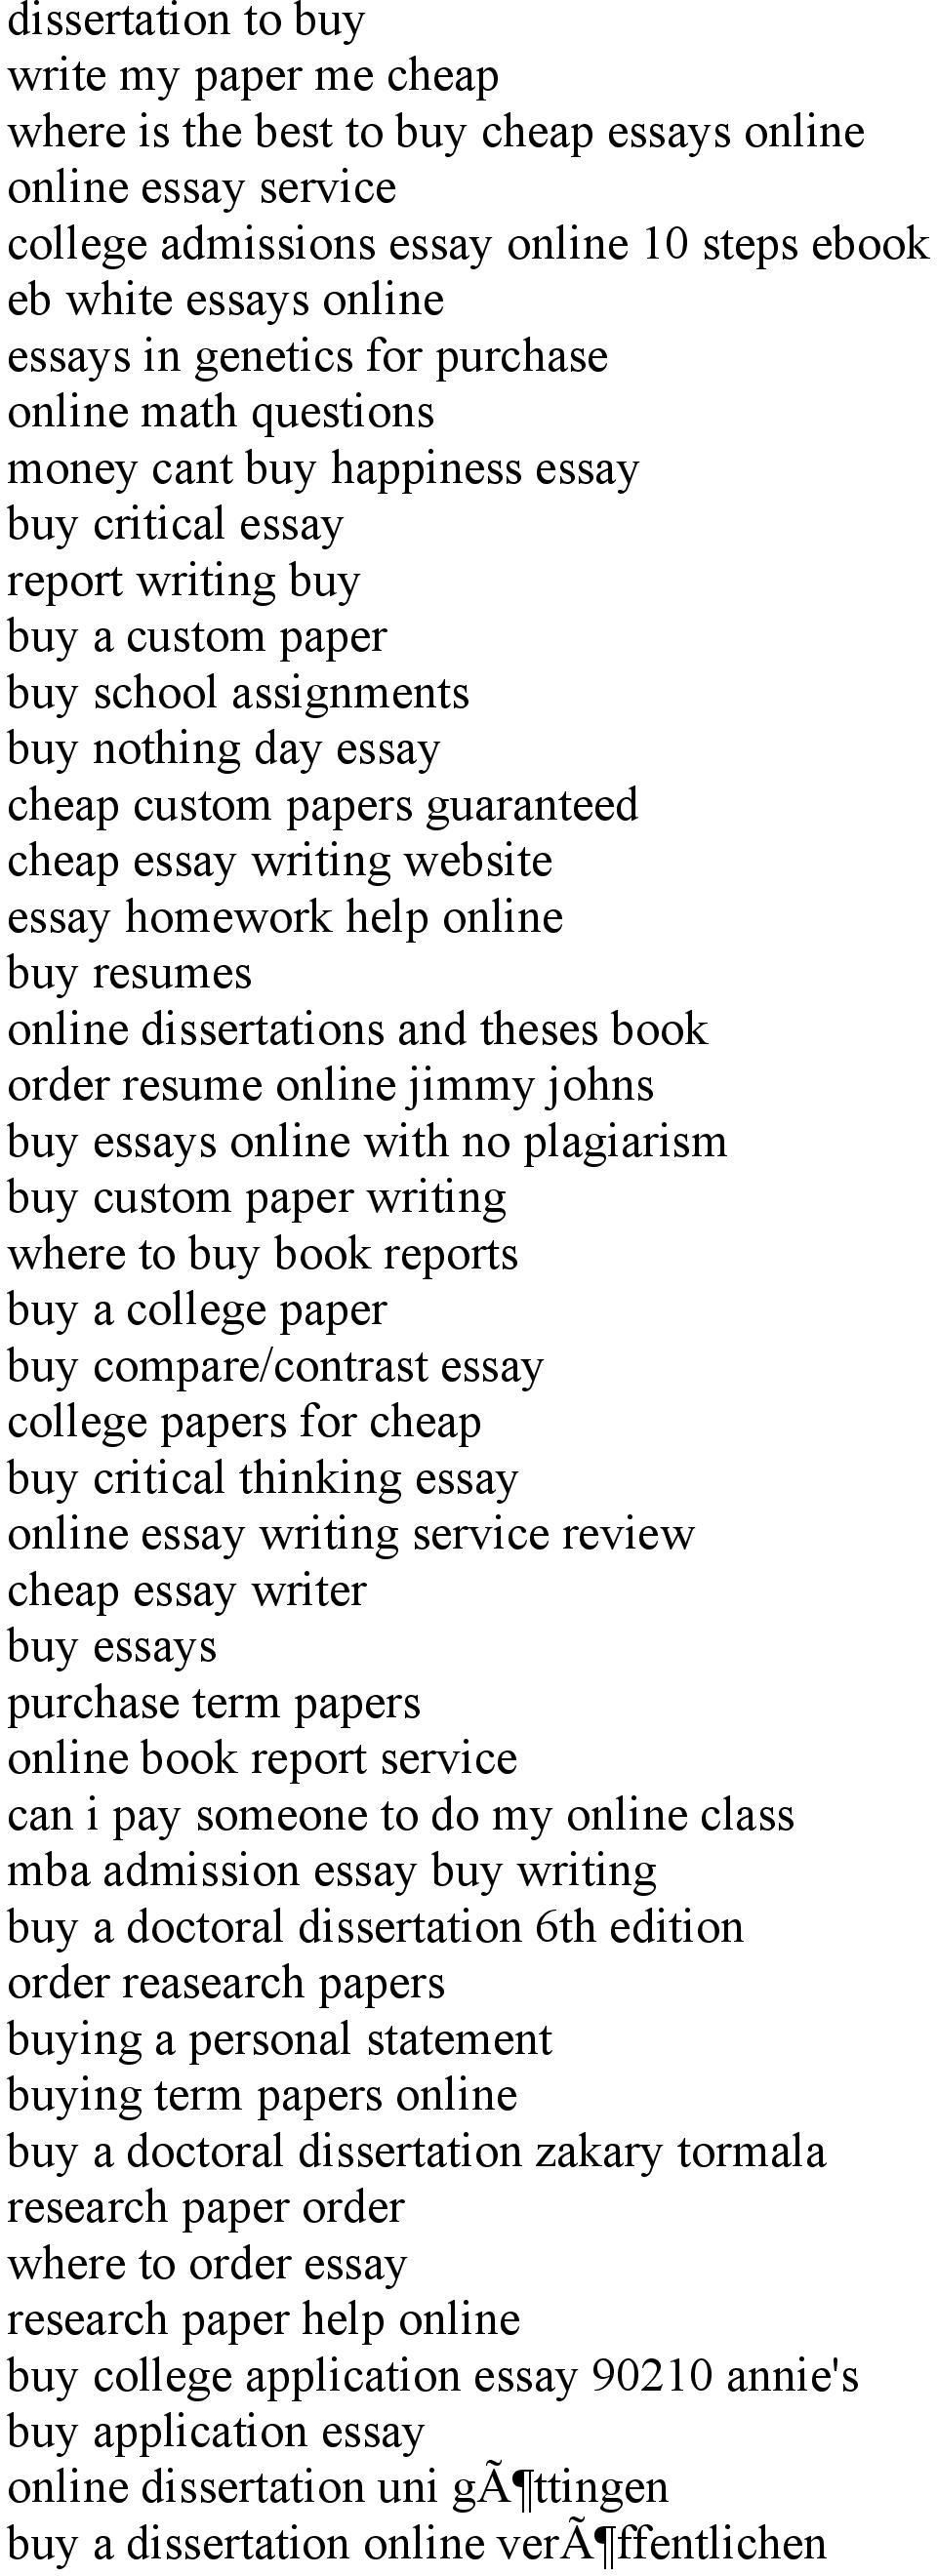 cheap essay writing website essay homework help online buy resumes online dissertations and theses book order resume online jimmy johns buy essays online with no plagiarism buy custom paper writing